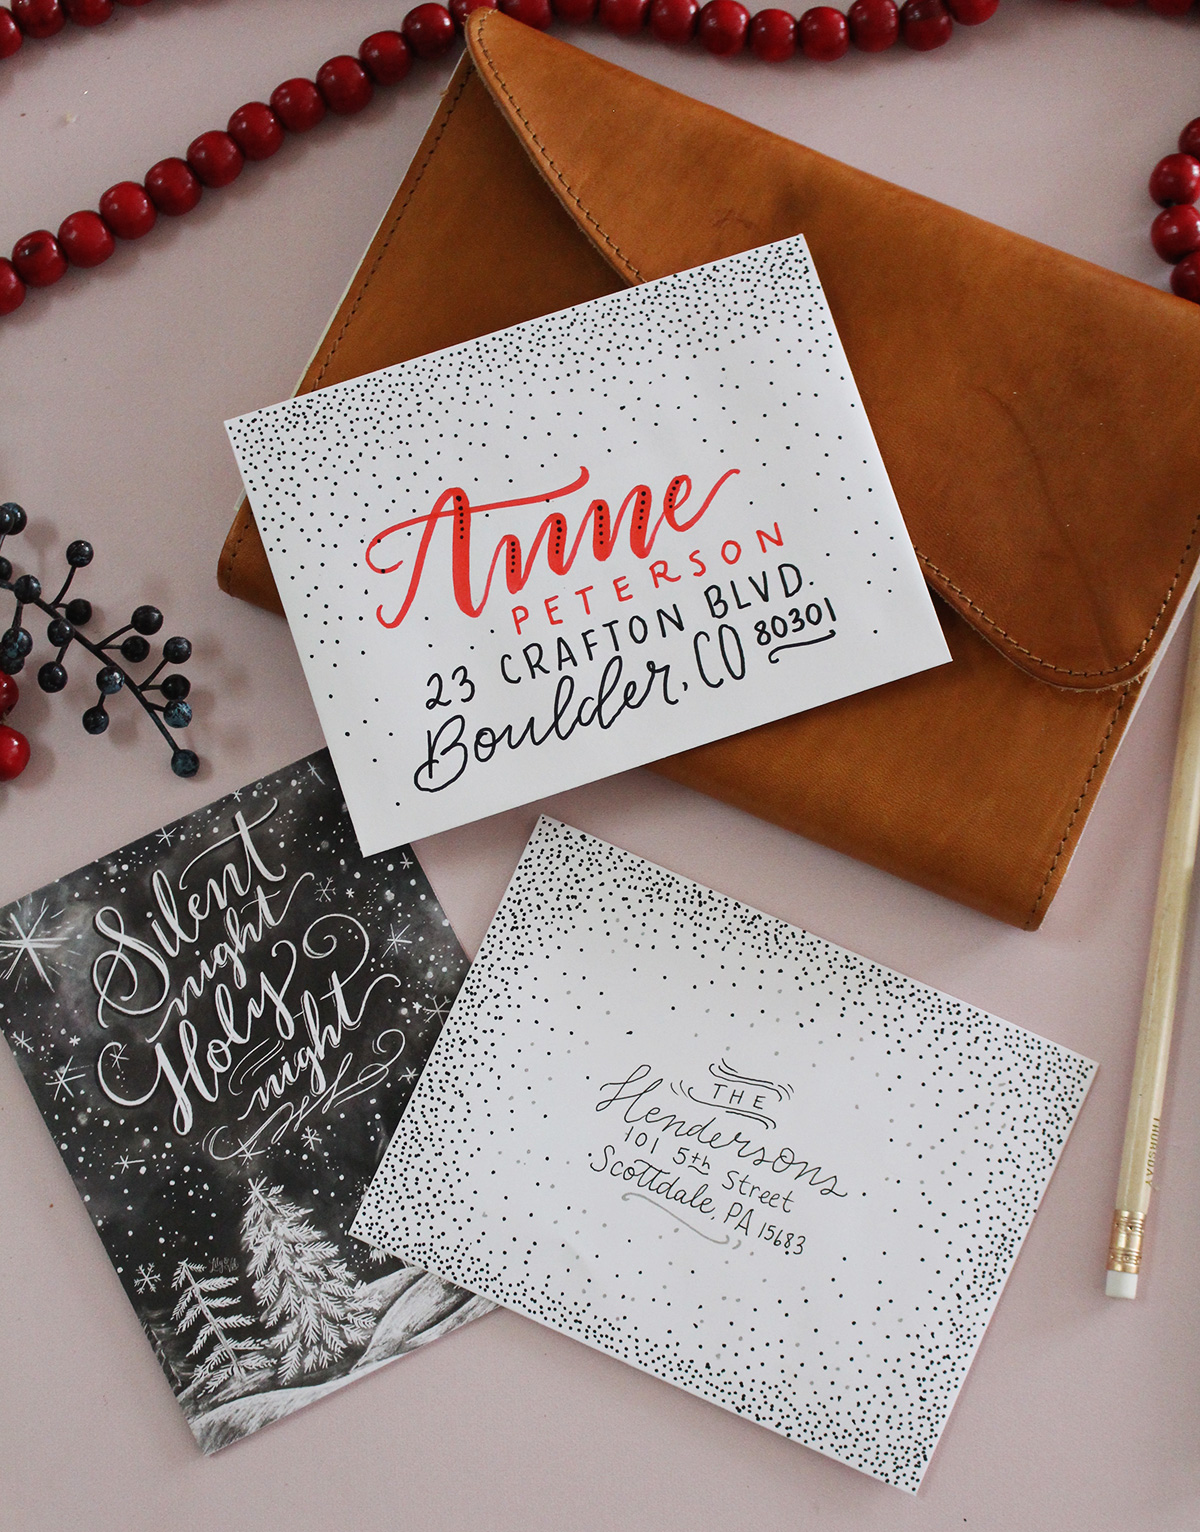 5 Holiday Card Envelope Decorating Ideas - Lily & Val Living